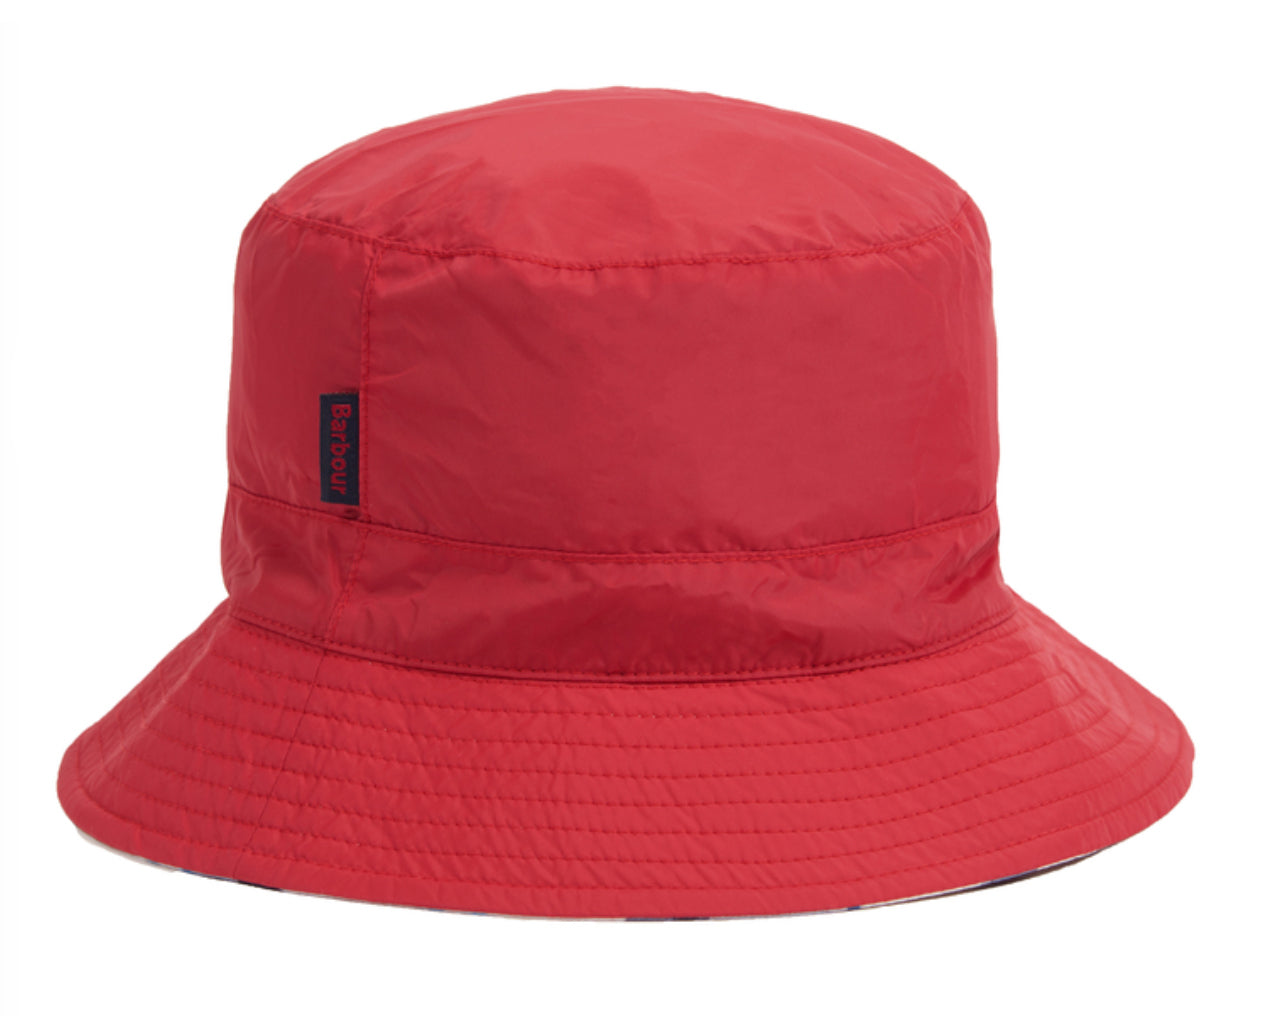 Barbour Shield Waterproof Bucket Hat - SALE - North Shore Saddlery